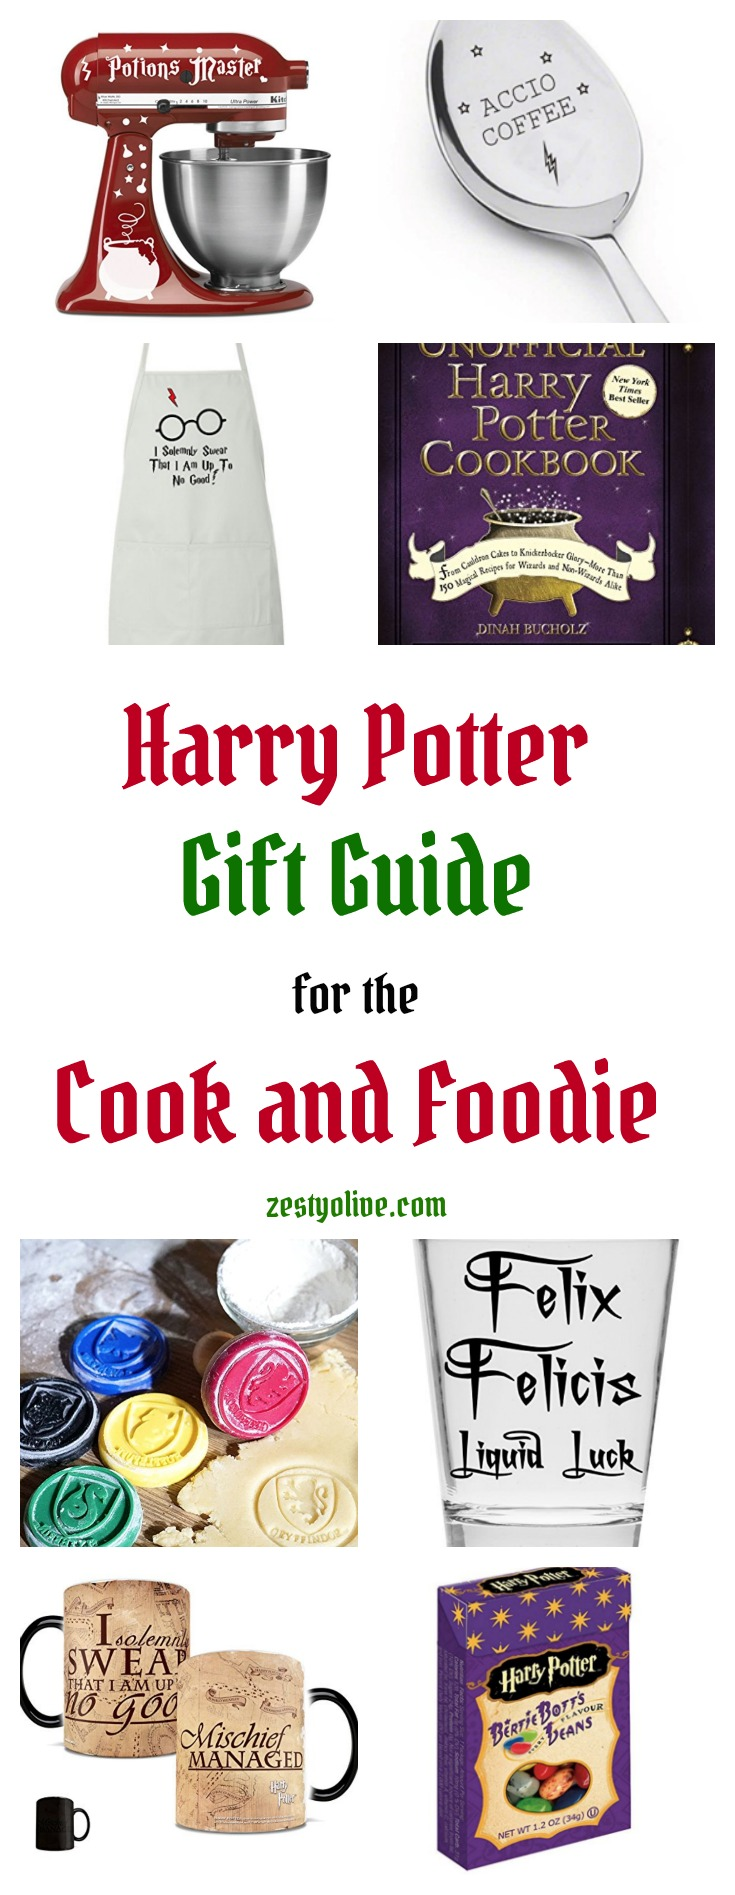 Whether you aspire to deck out your kitchen like the Great Hall or just have a cozy kitchen like Mrs. Weasley, here's a Harry Potter Gift Guide for the Cook or Foodie. Accio, cooking skills! #harrypotter #harrypottergifts #giftguide #cooking #recipes #accio